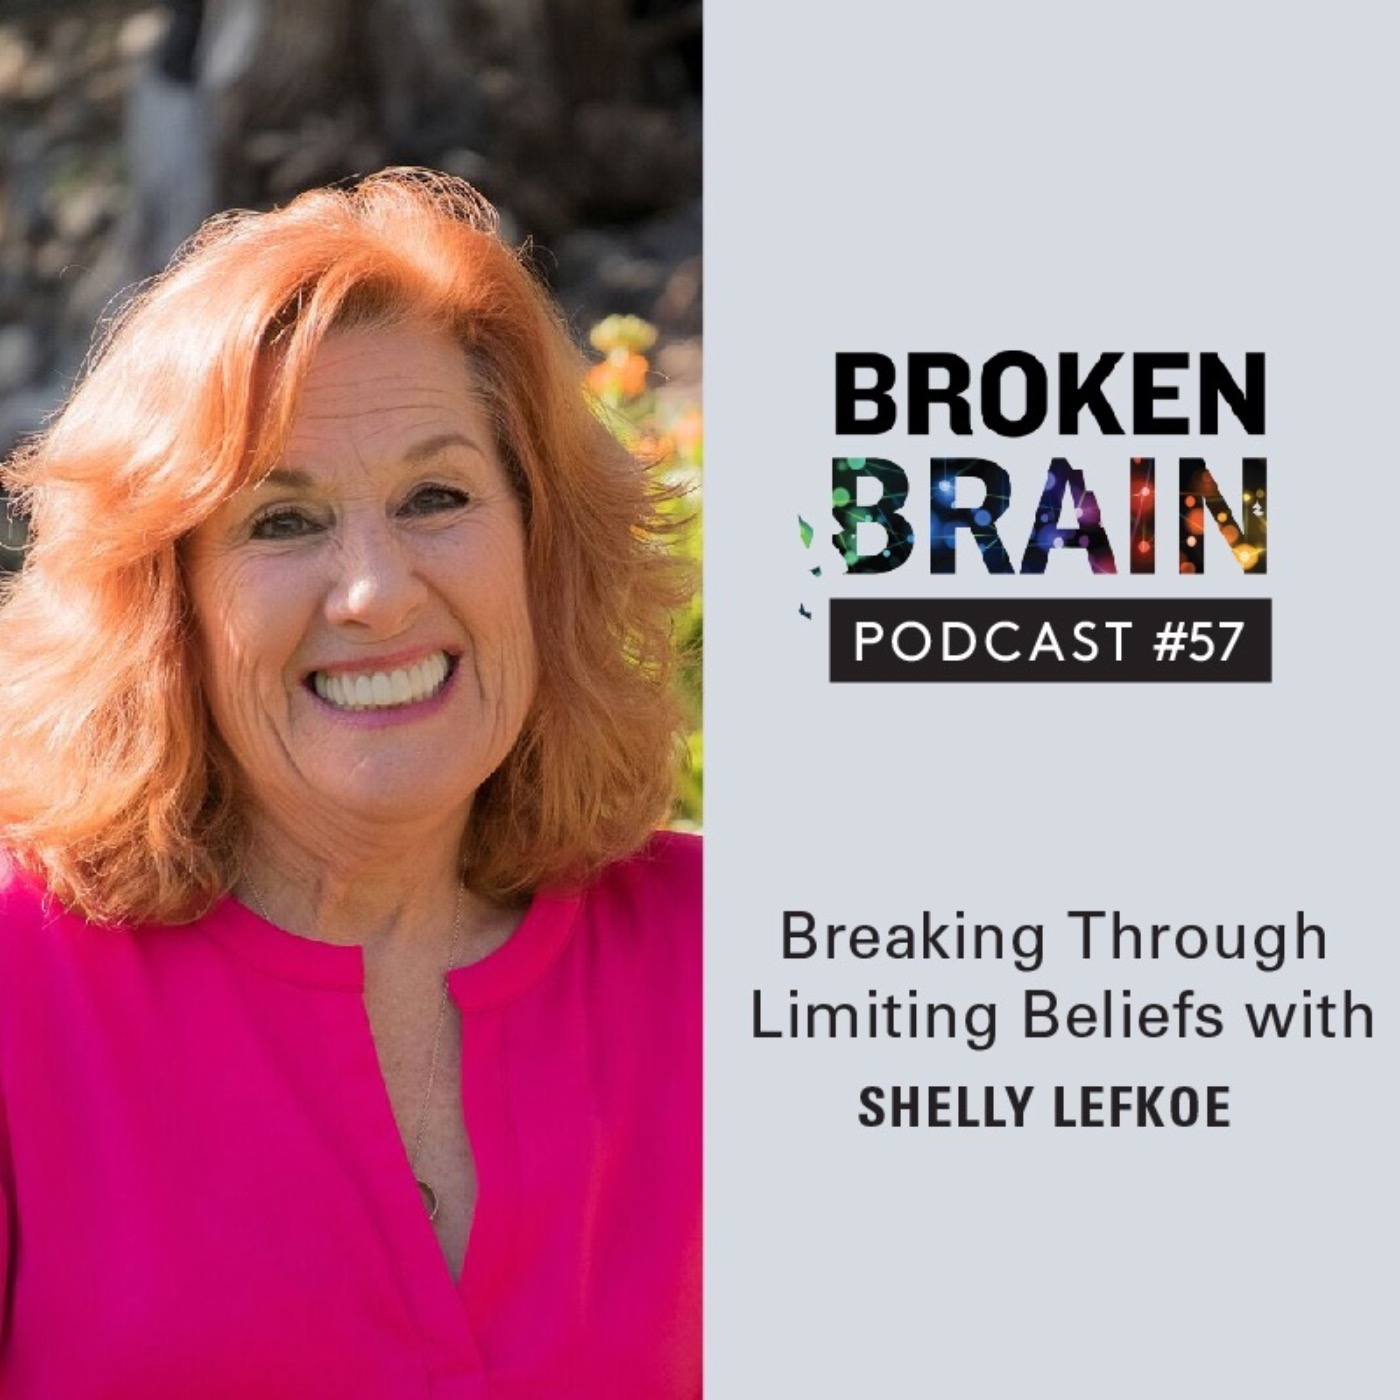 #57: Breaking Through Limiting Beliefs with Shelly Lefkoe